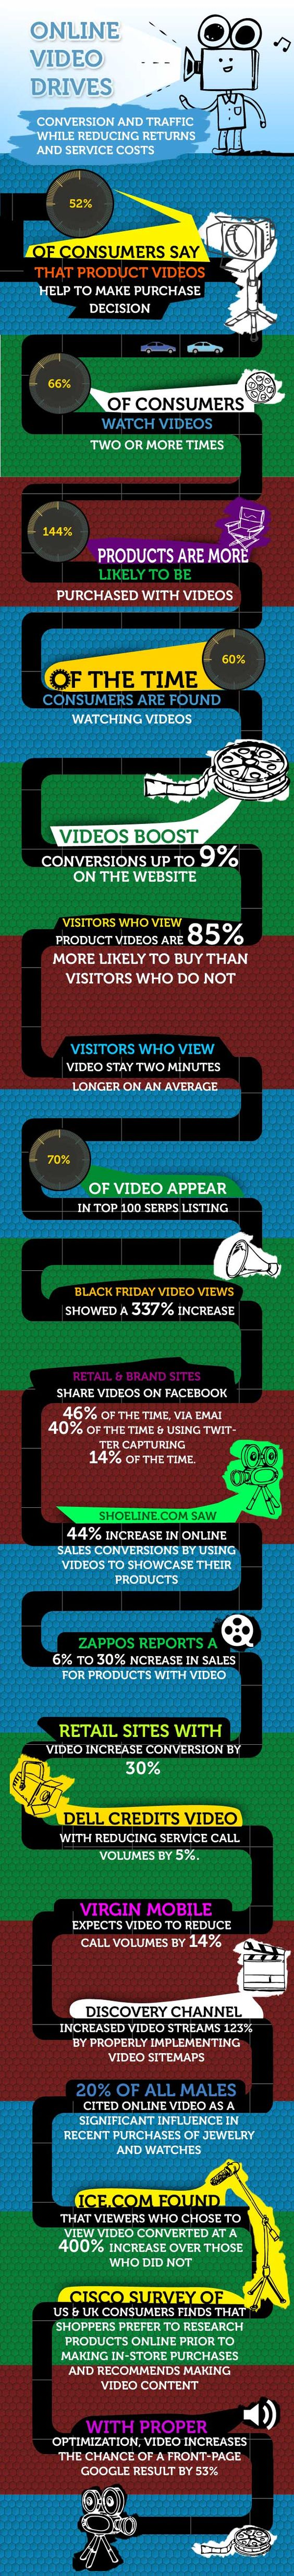 Online Video Drives Conversion and Traffic